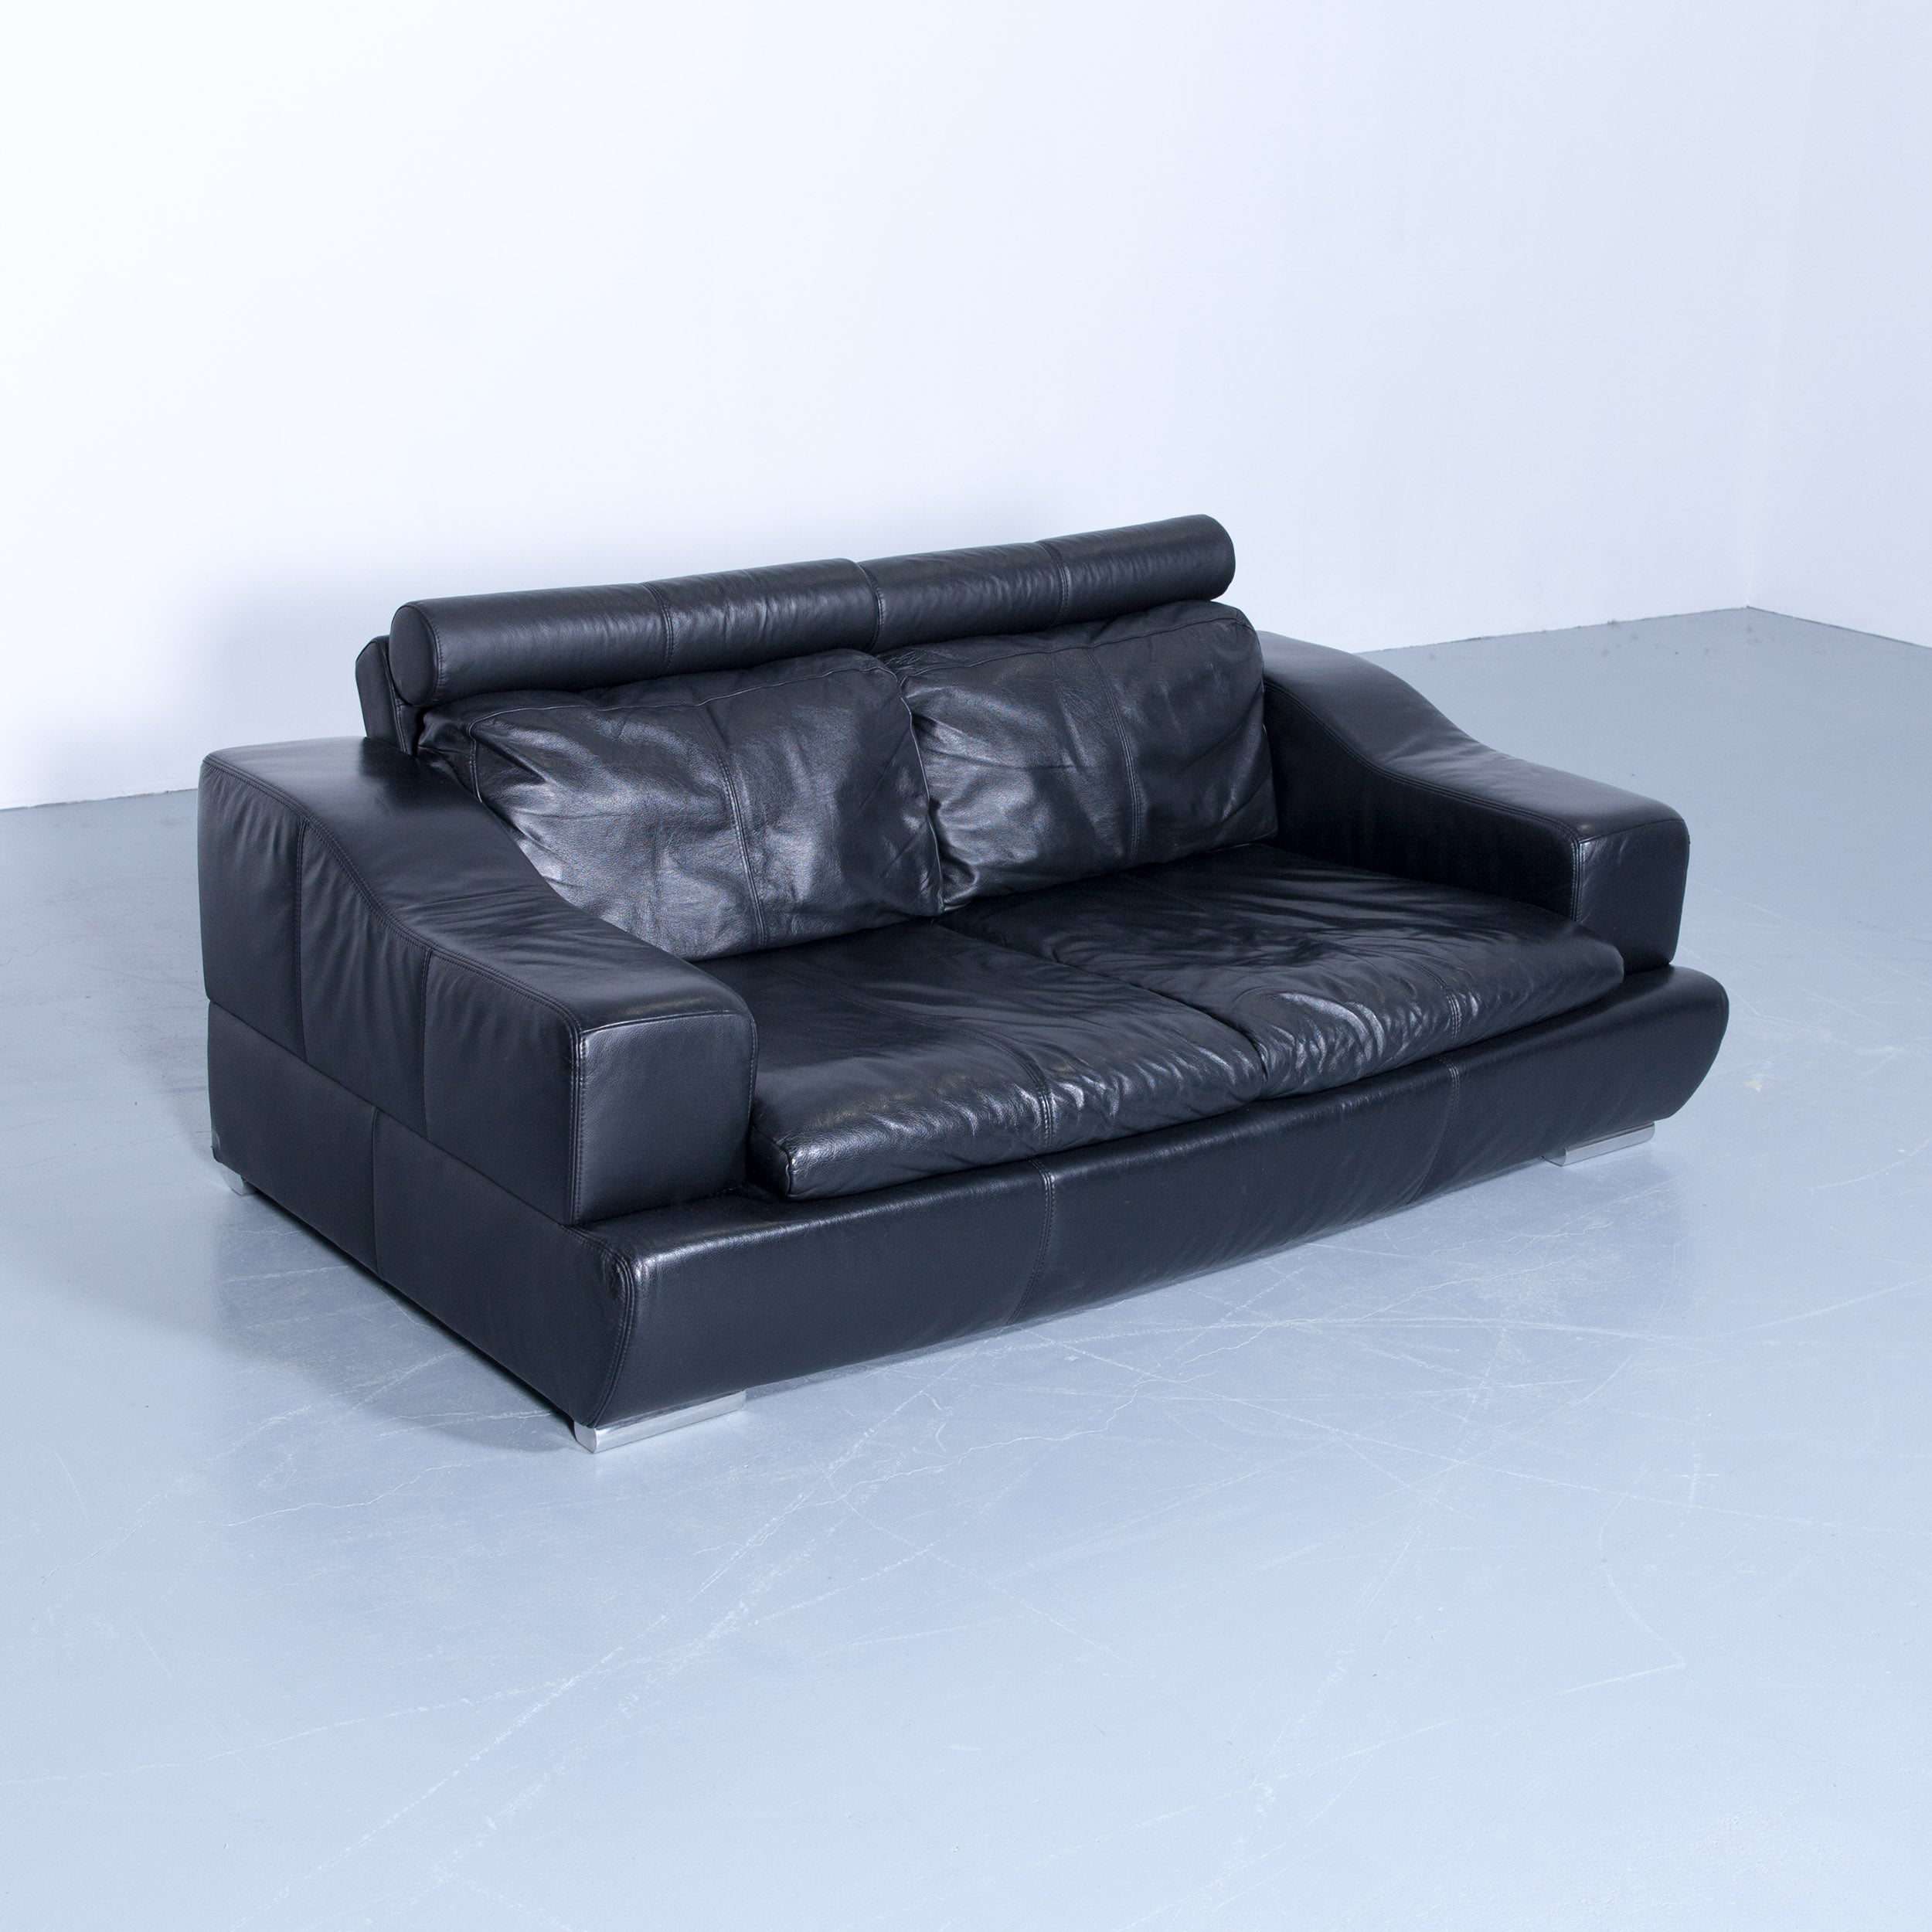 couch mit funktion affordable gallery of rolf benz. Black Bedroom Furniture Sets. Home Design Ideas